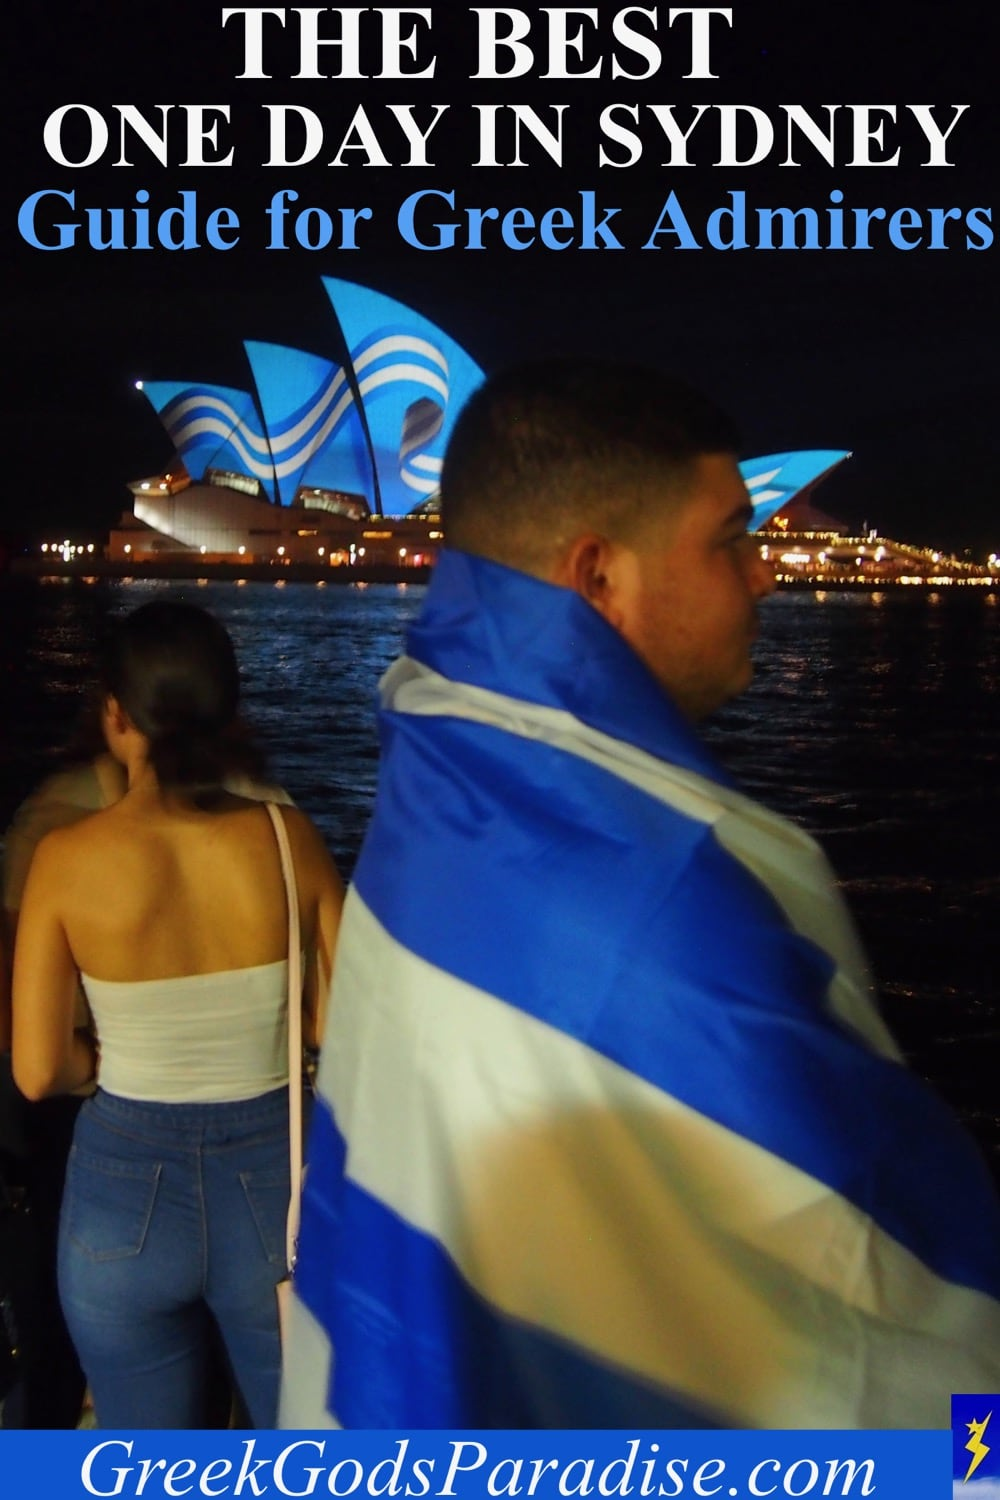 The Best One Day in Sydney Guide for Greek Admirers